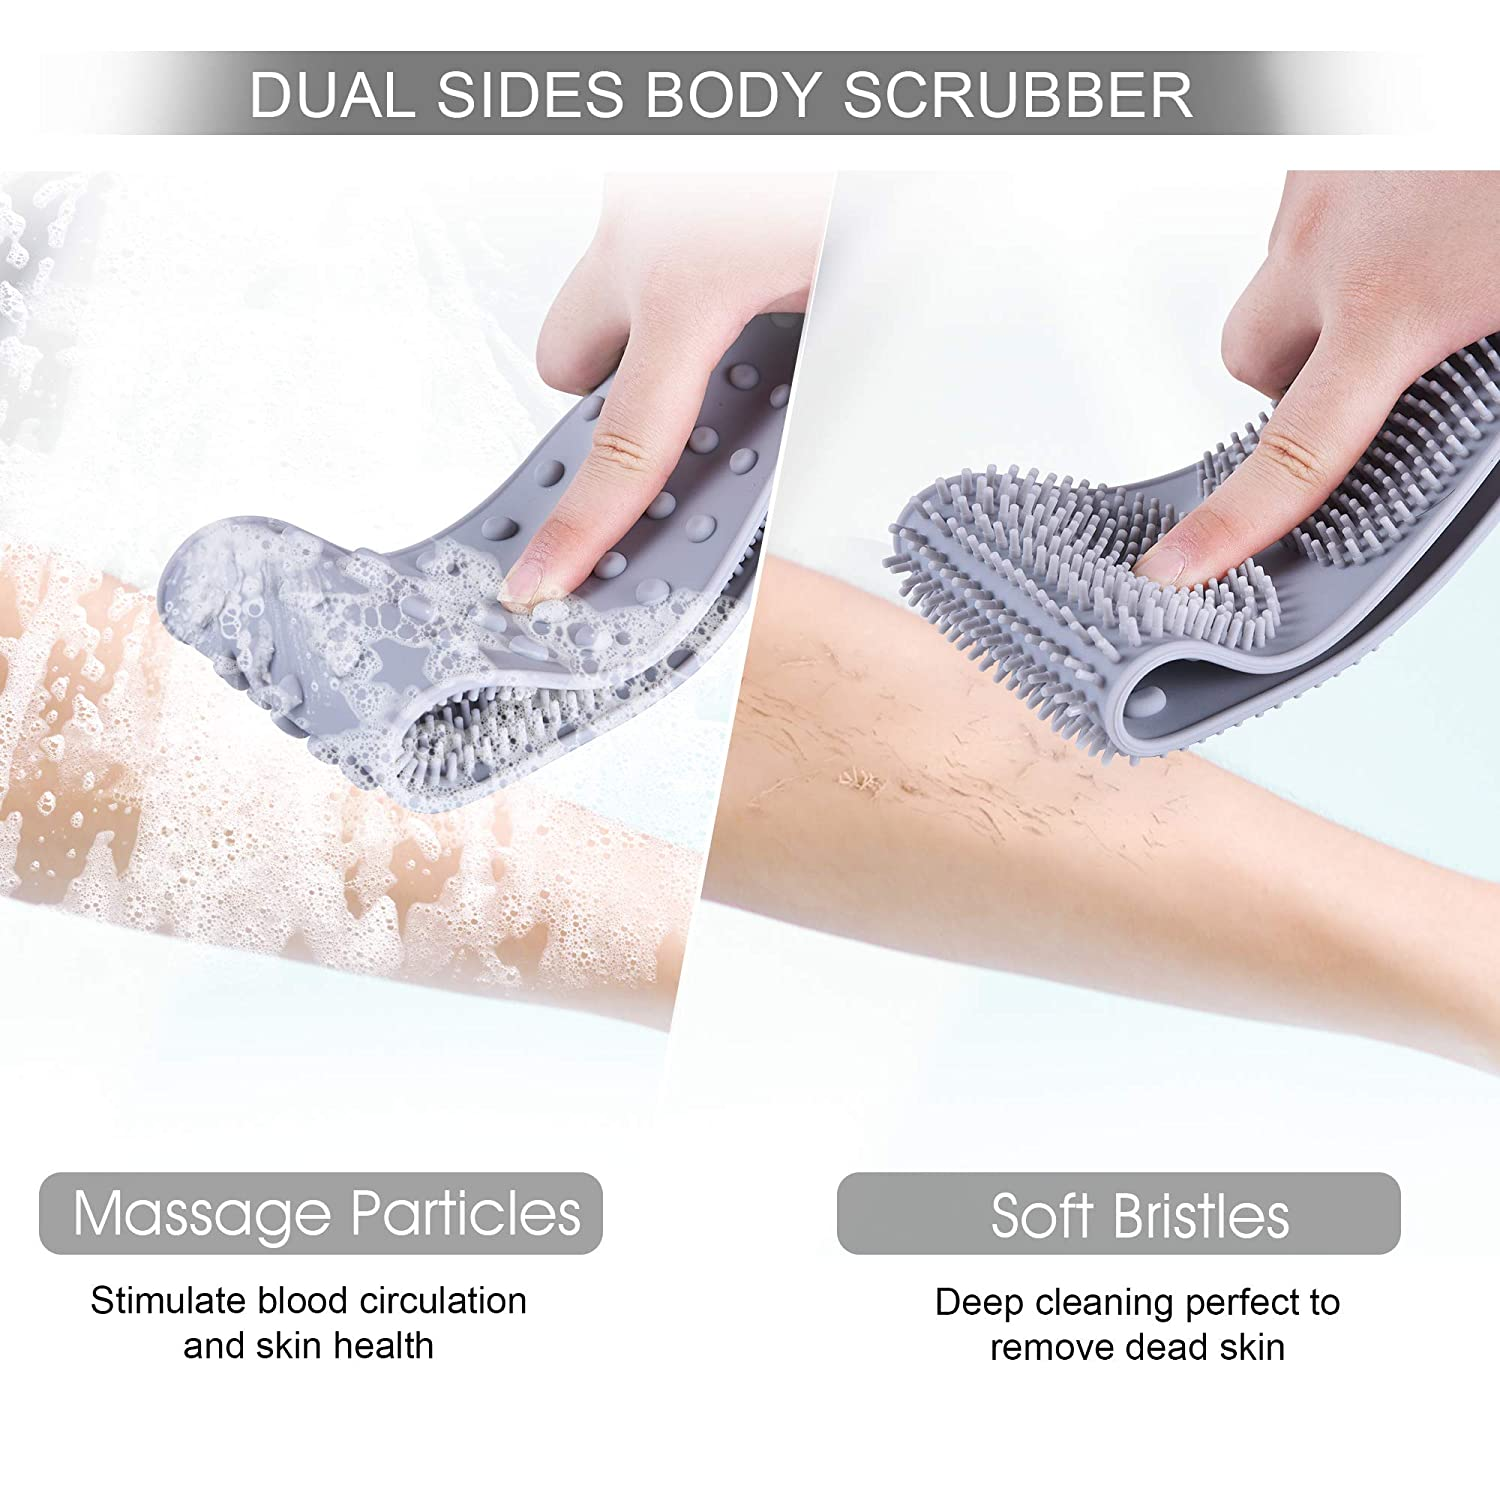 Silicone Back Scrubber for Shower, OHH 31.5 inches Exfoliating Long Bath Body Brush for Men Women, Double Side Back Washer Brush for Dead Skin Remover, Shampoo Brush and 2 Hooks Gift (Gray) : Beauty